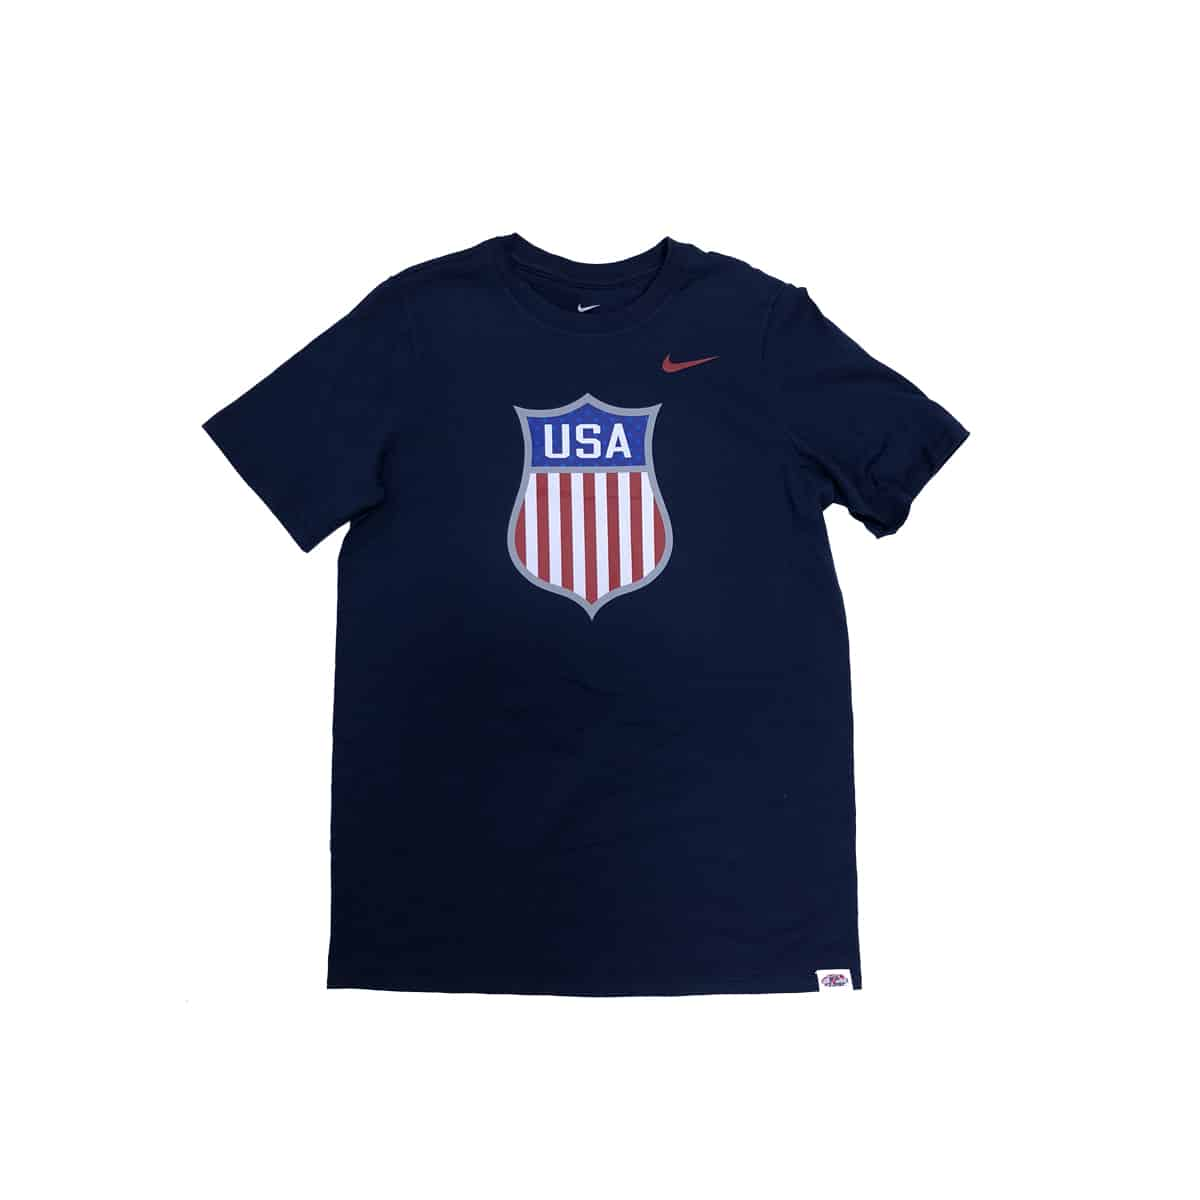 Team USA Nike Athletic Youth Tee in Navy